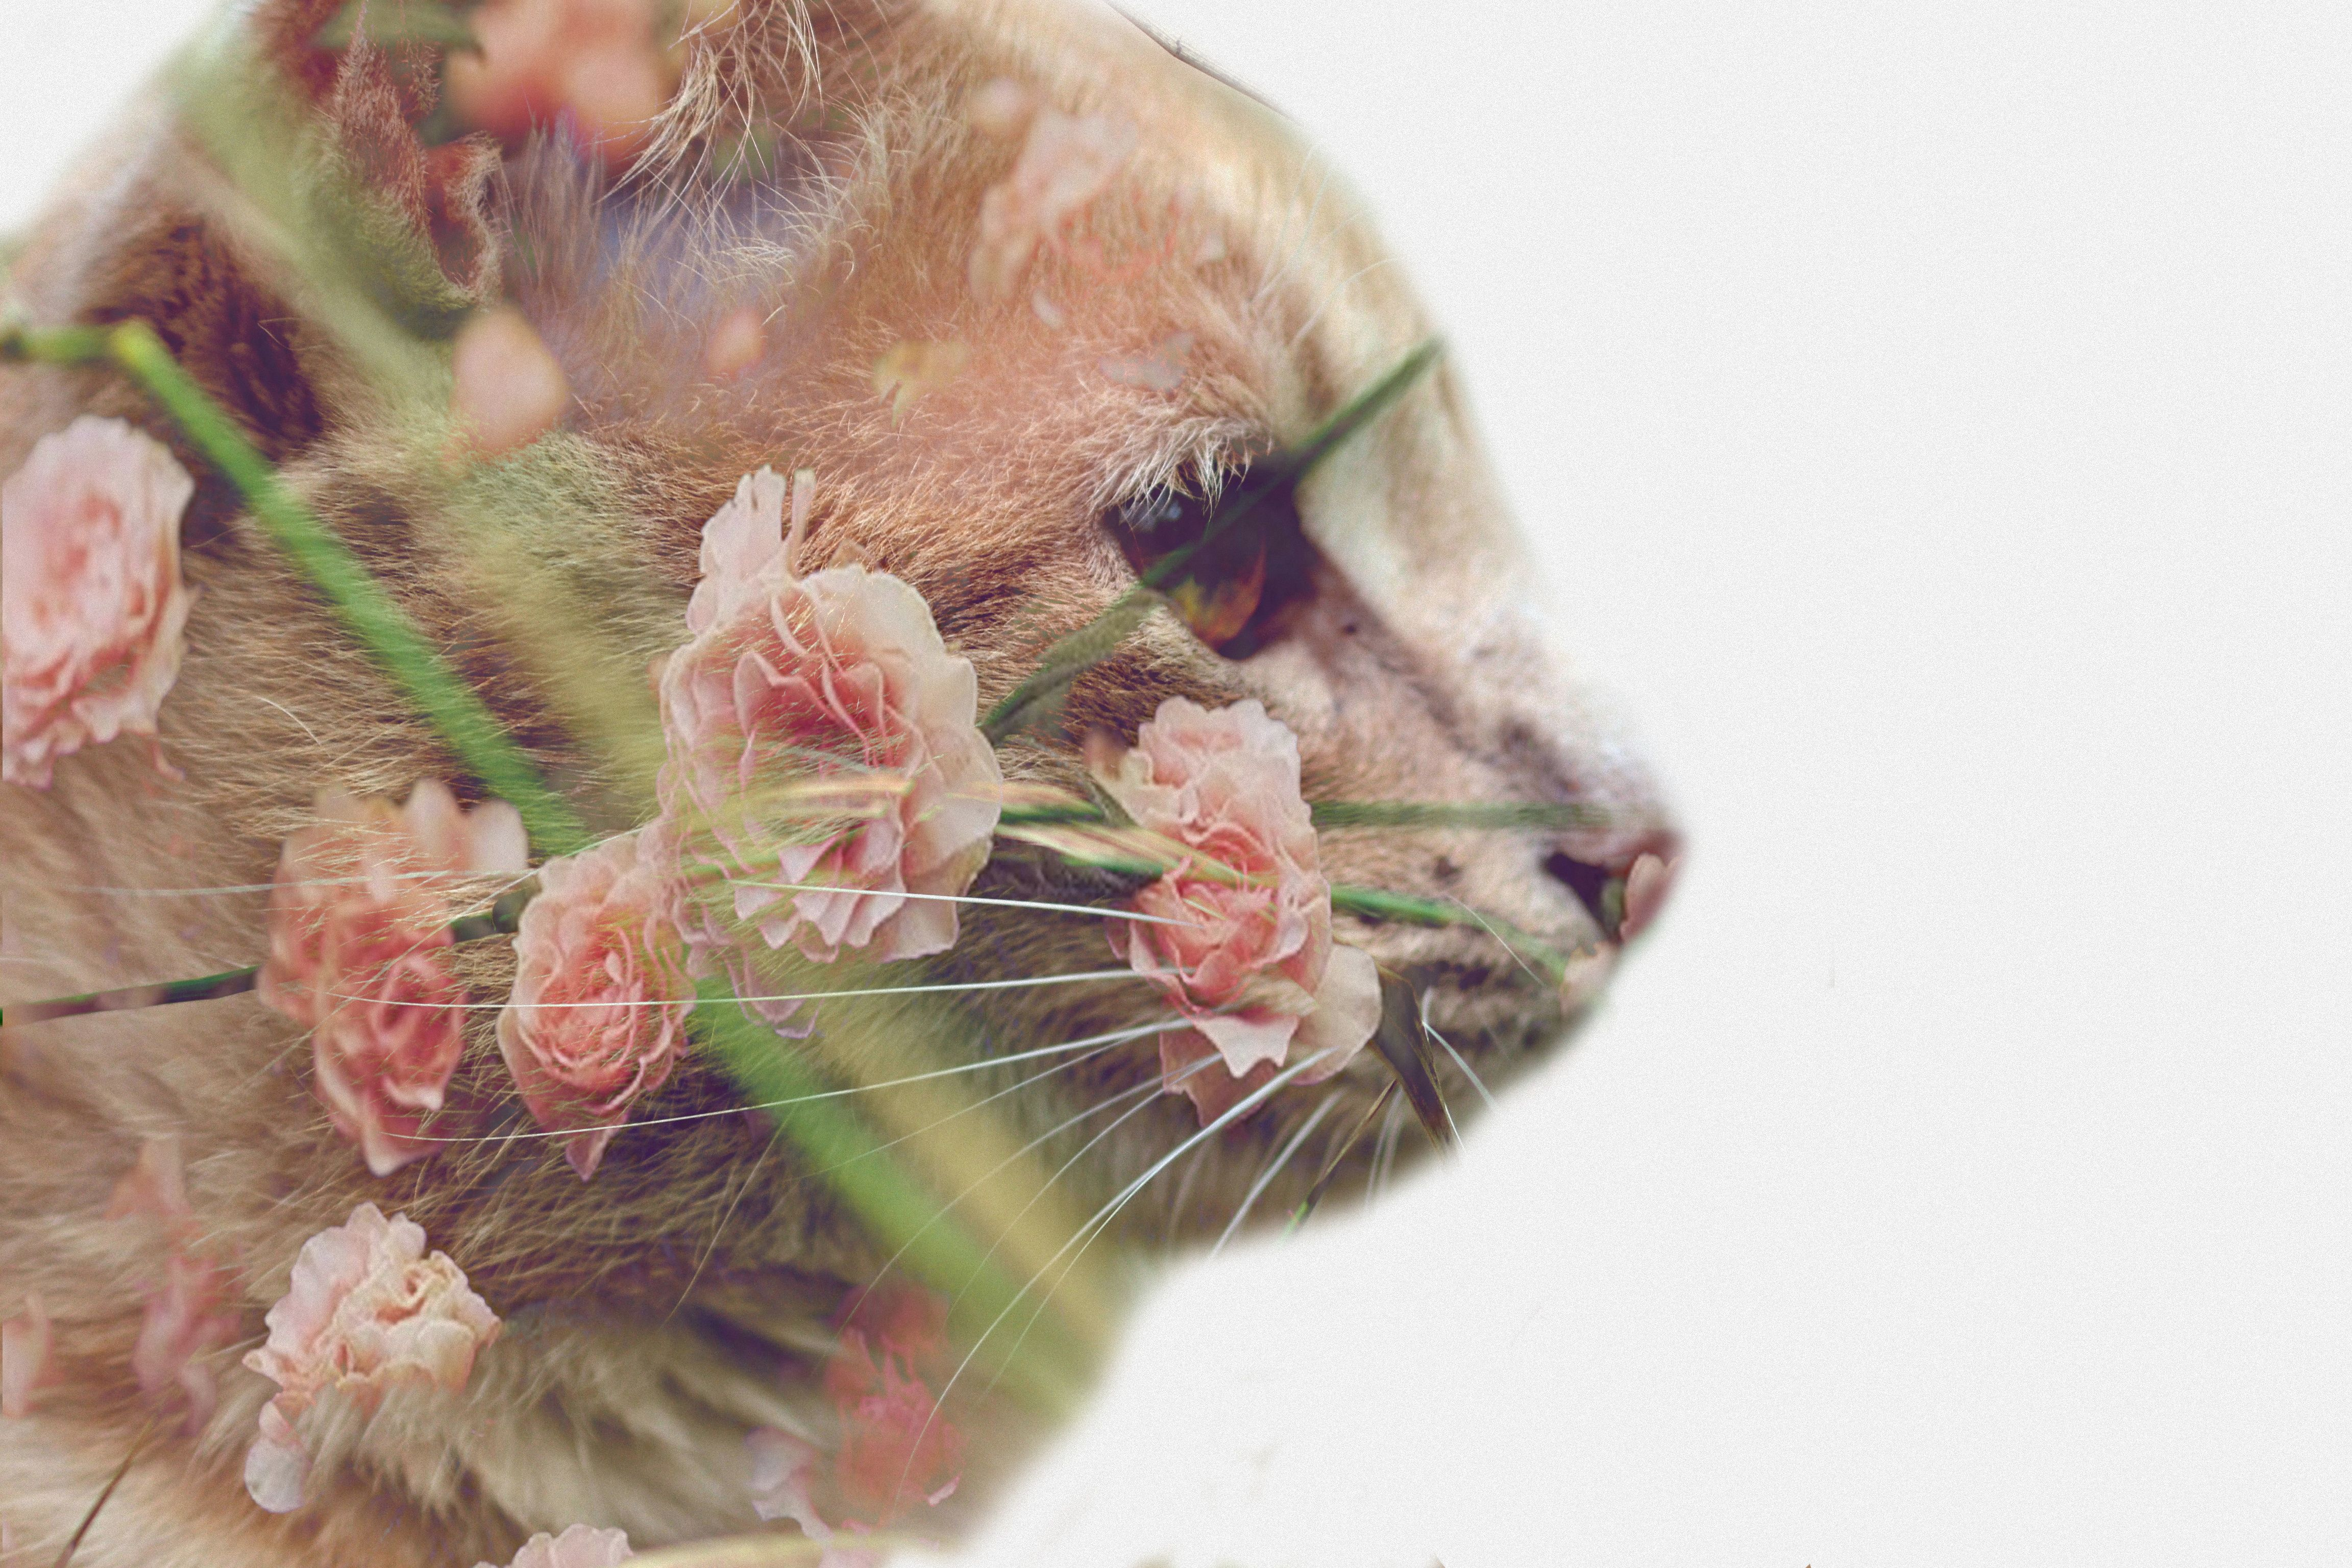 Cat and Vintage Flowers Double Exposure